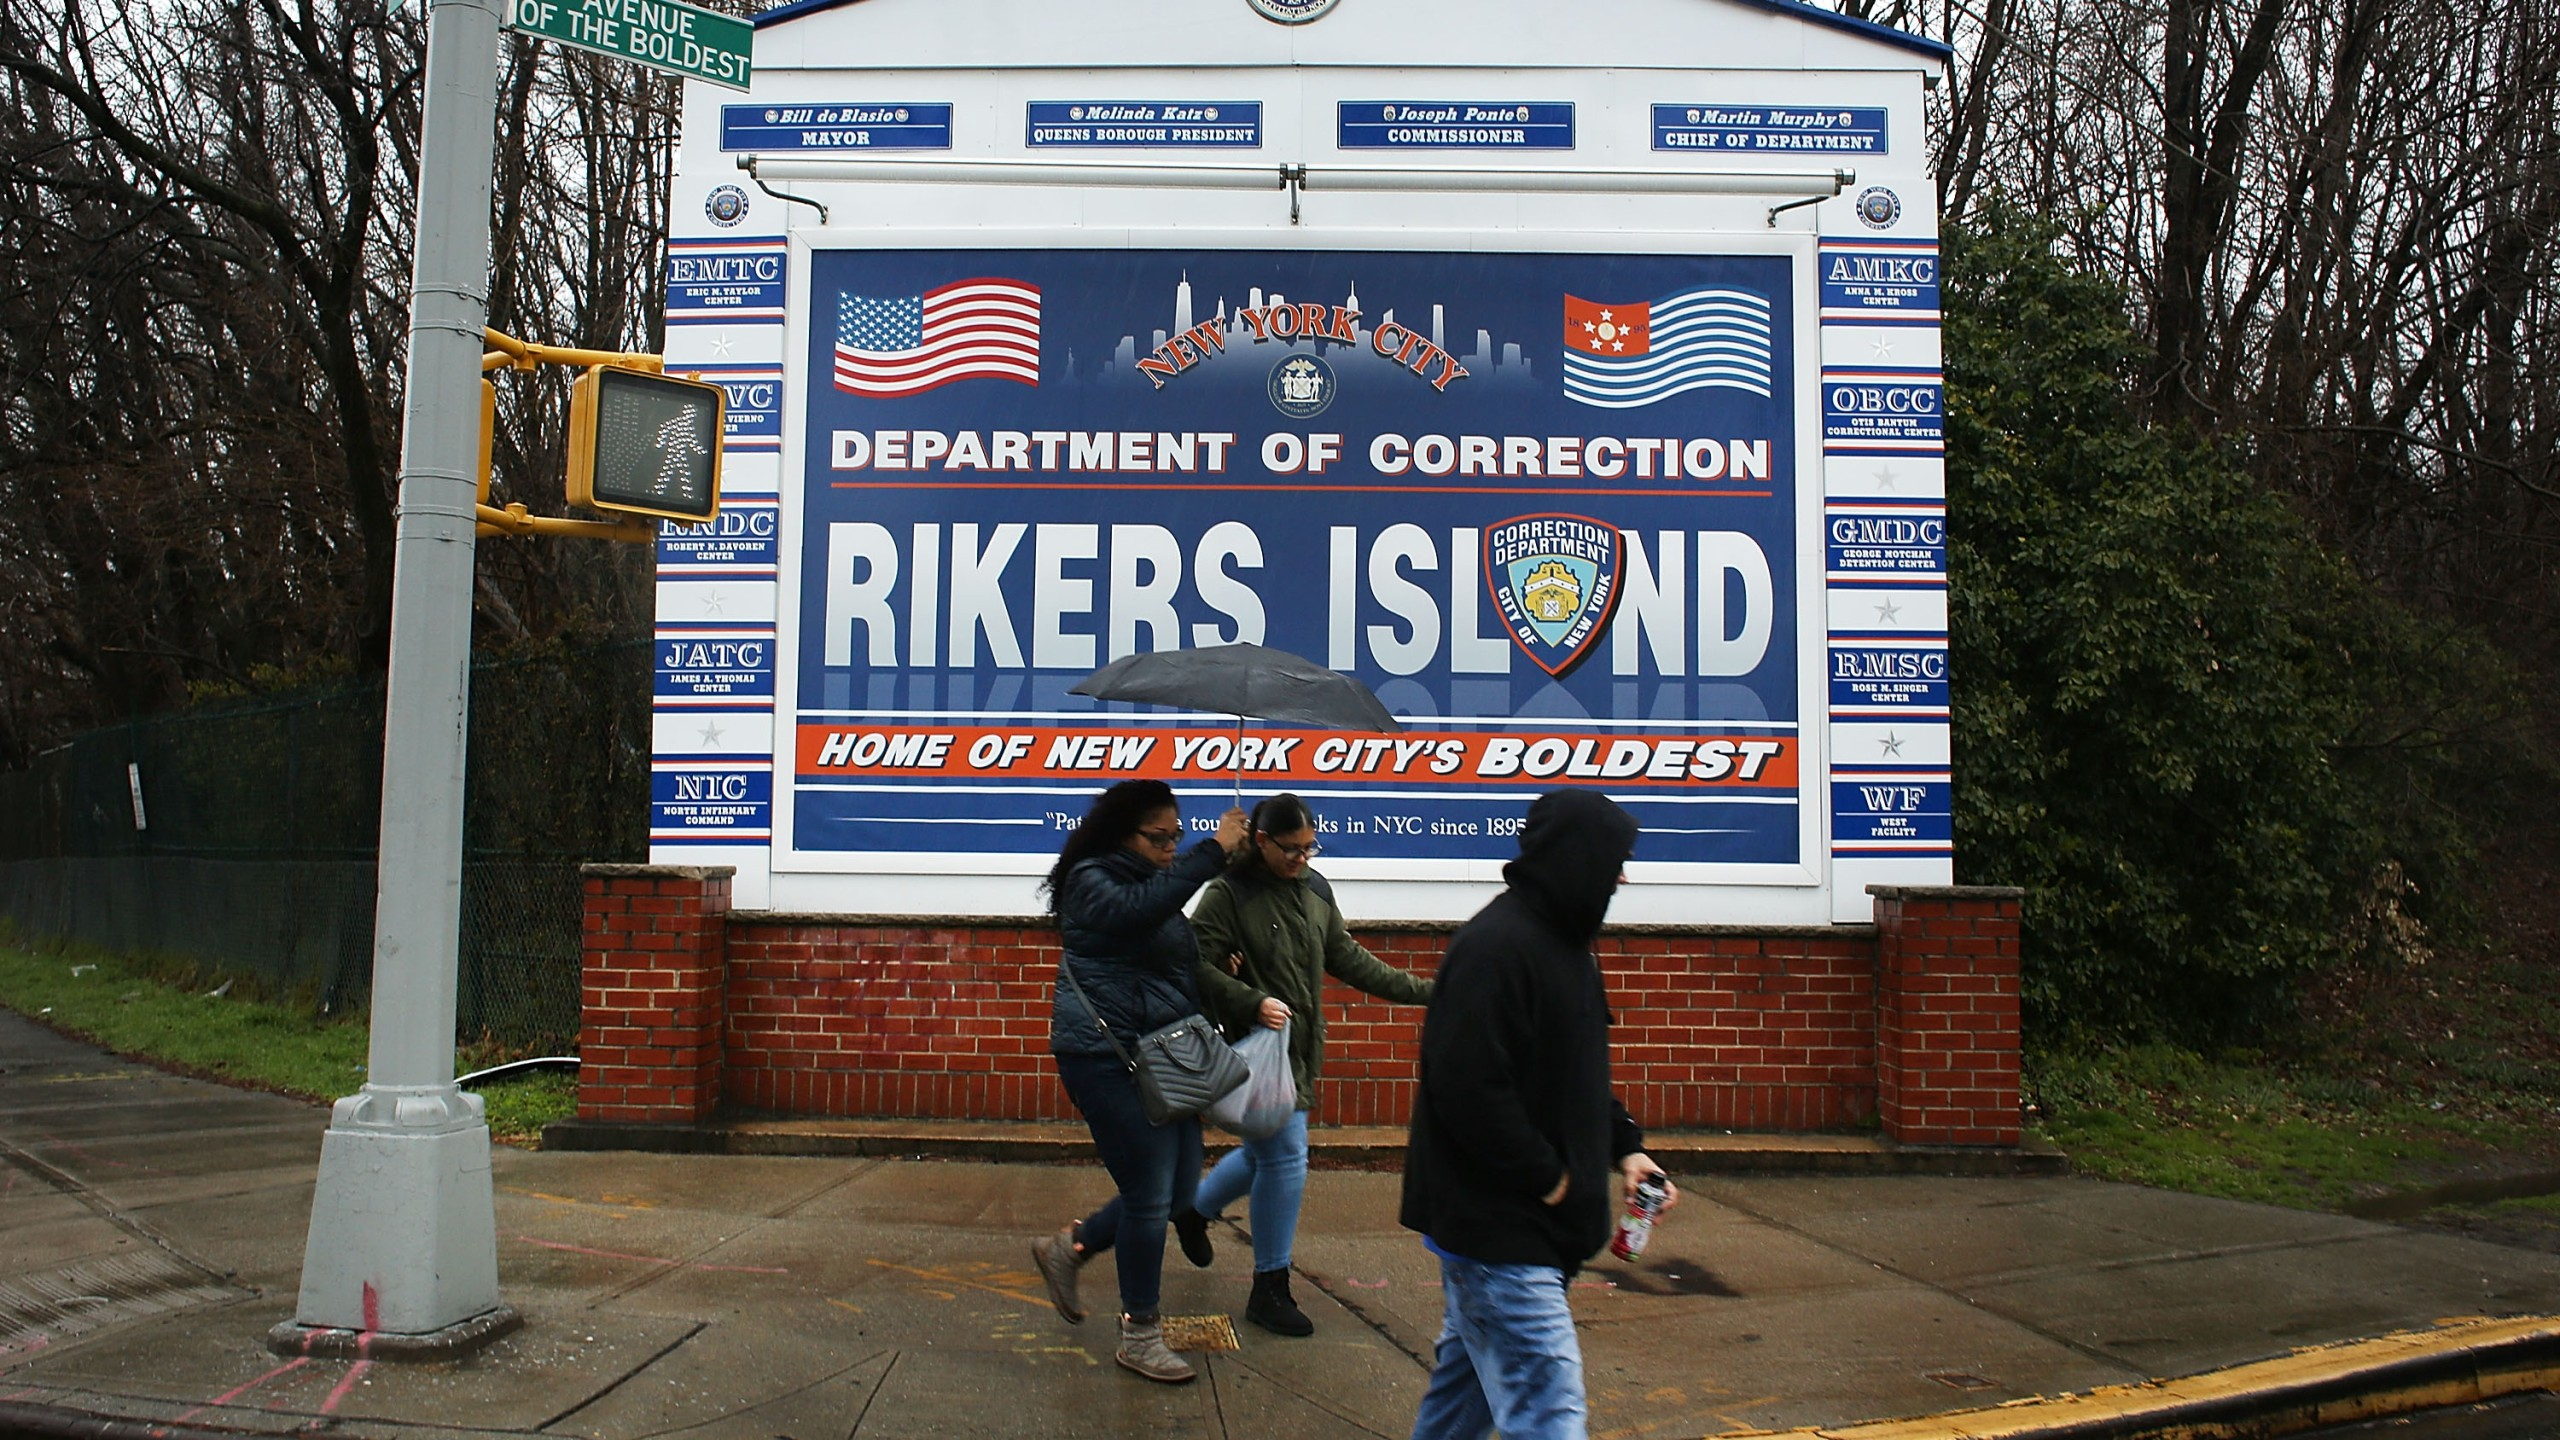 People walk by a sign at the entrance to Rikers Island on March 31, 2017 in New York City. (Credit: Spencer Platt/Getty Images)